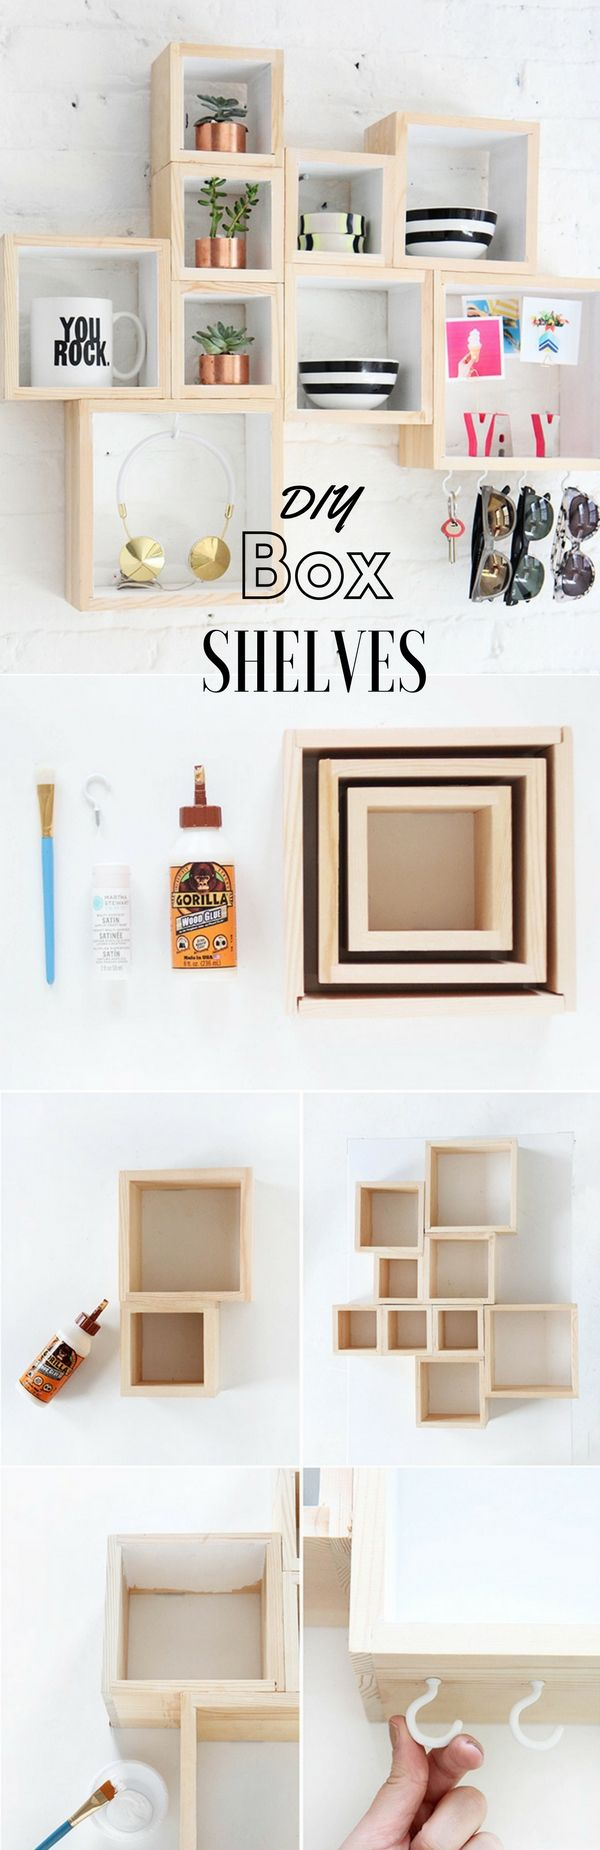 best diy images on pinterest home ideas craft ideas and bricolage